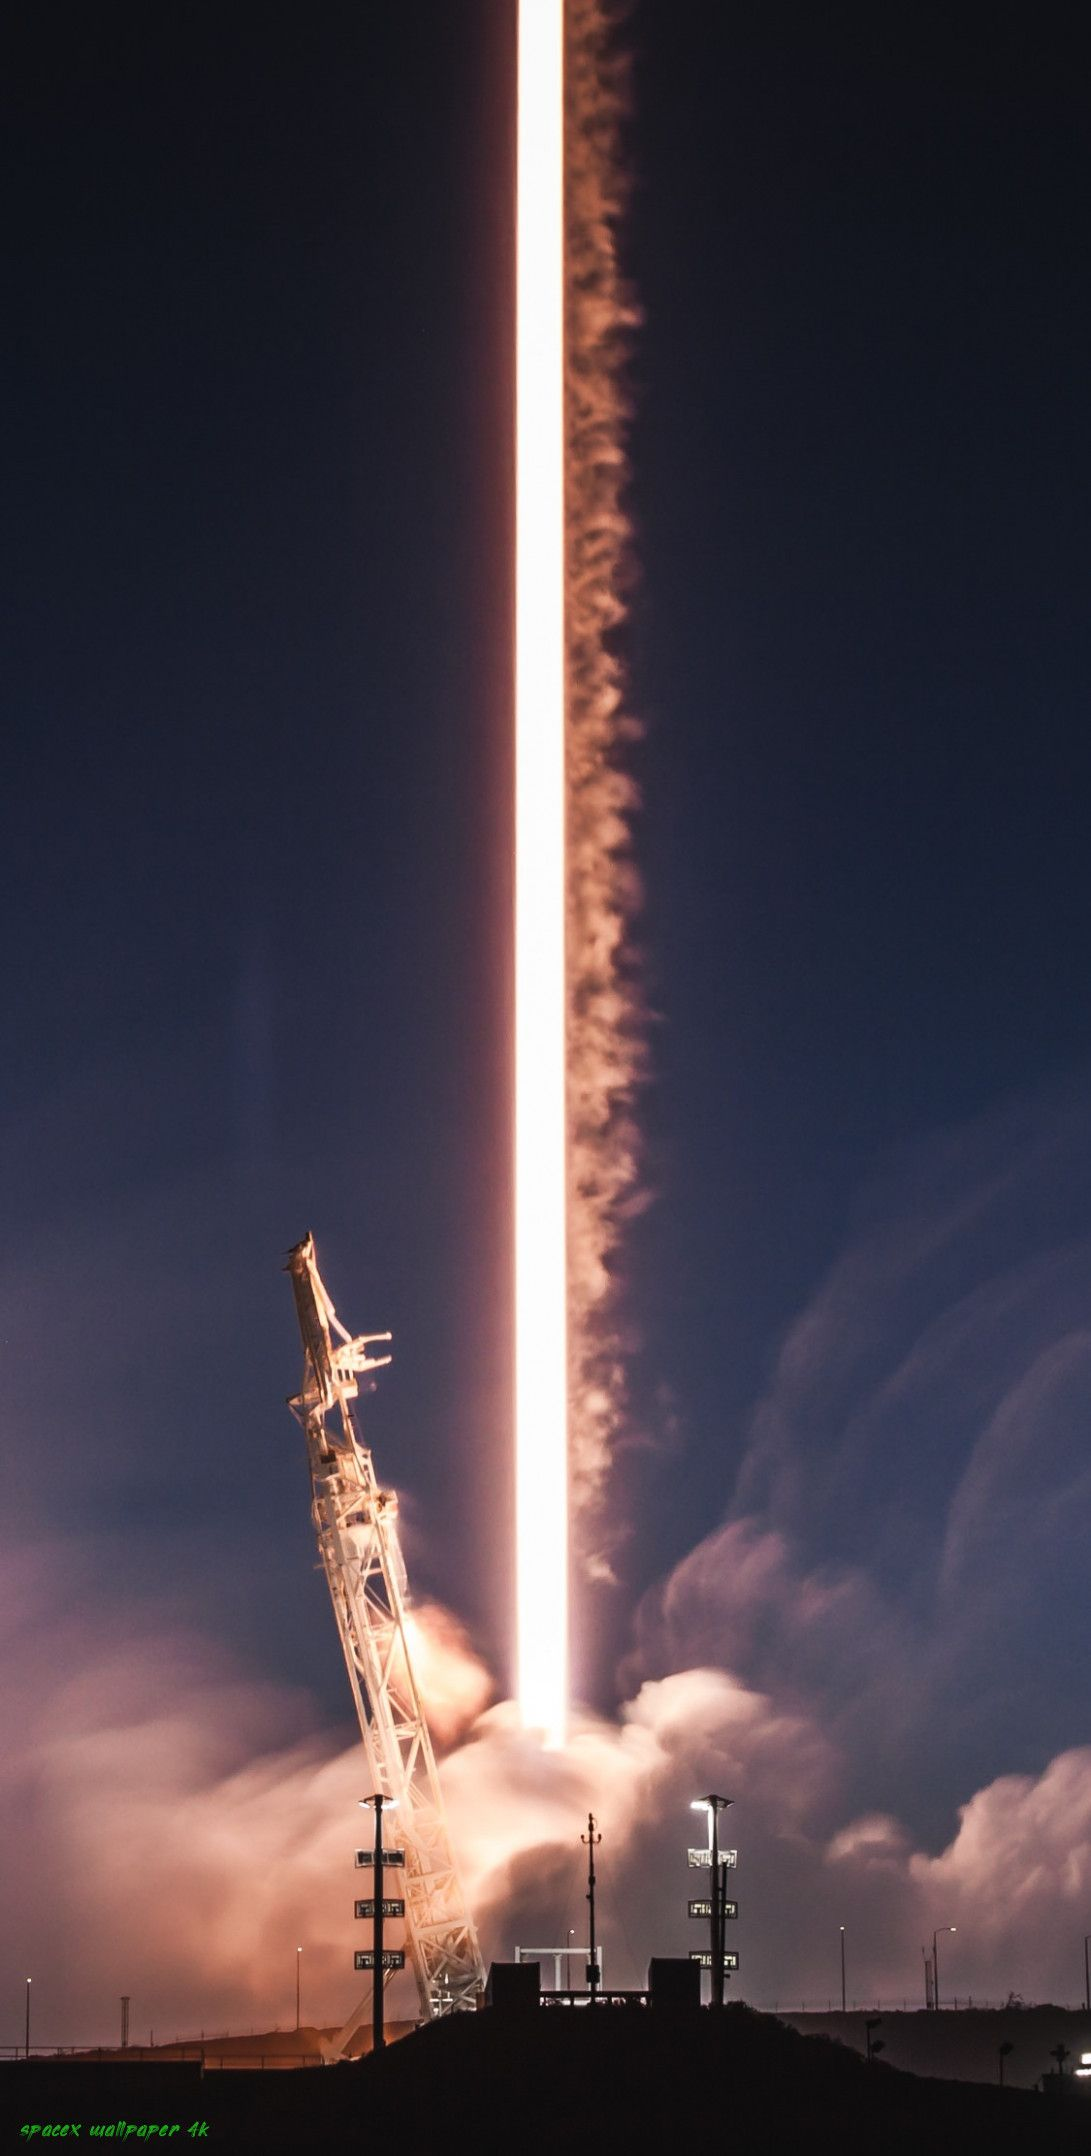 8 Unexpected Ways Spacex Wallpaper 8k Can Make Your Life Better Spacex Wallpaper 8k In 2020 Iphone Wallpaper Wallpaper Live Wallpaper Iphone